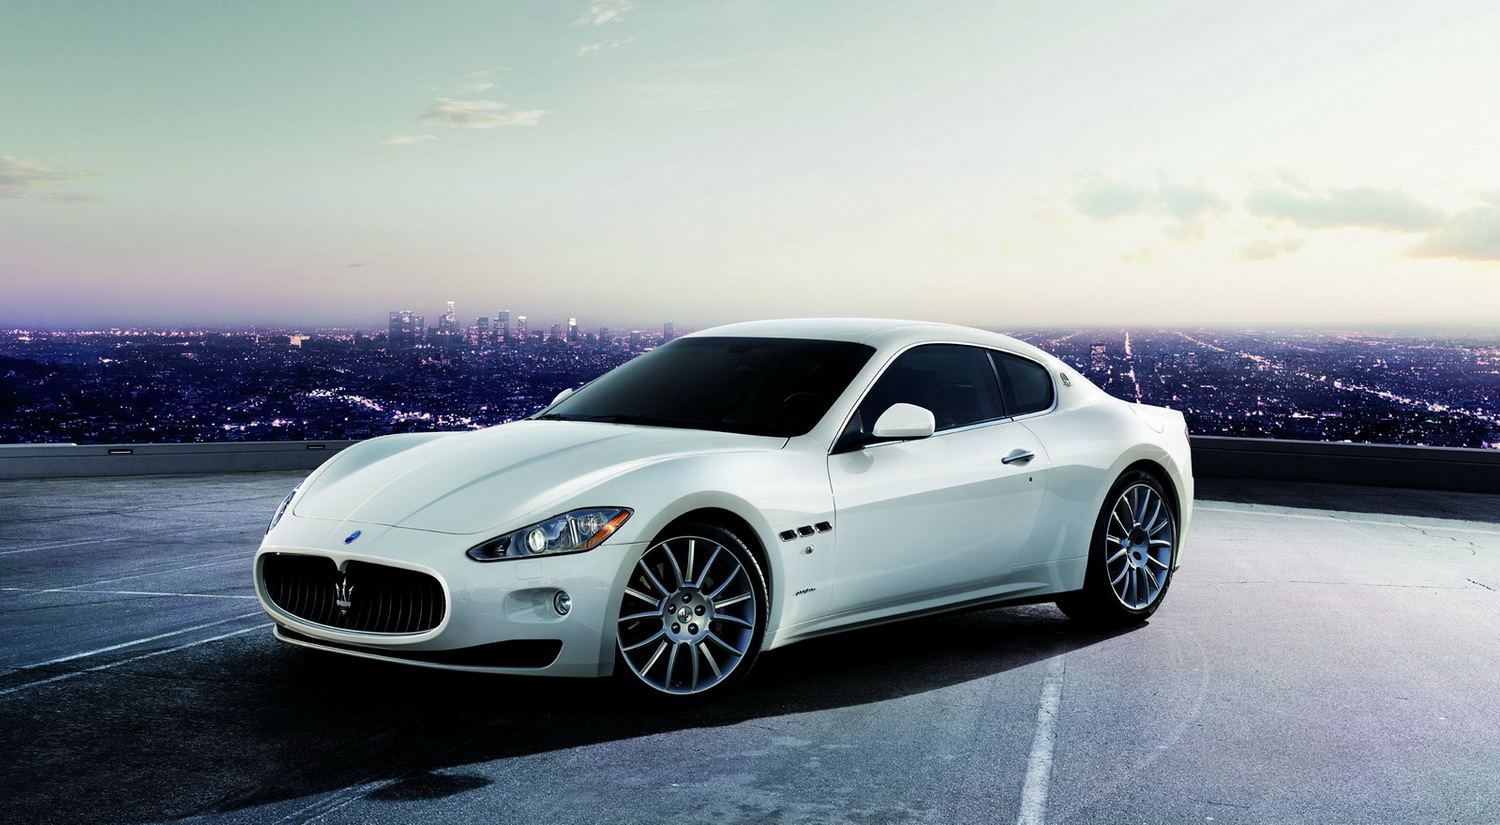 maserati granturismo S automatic Wallpapers HD